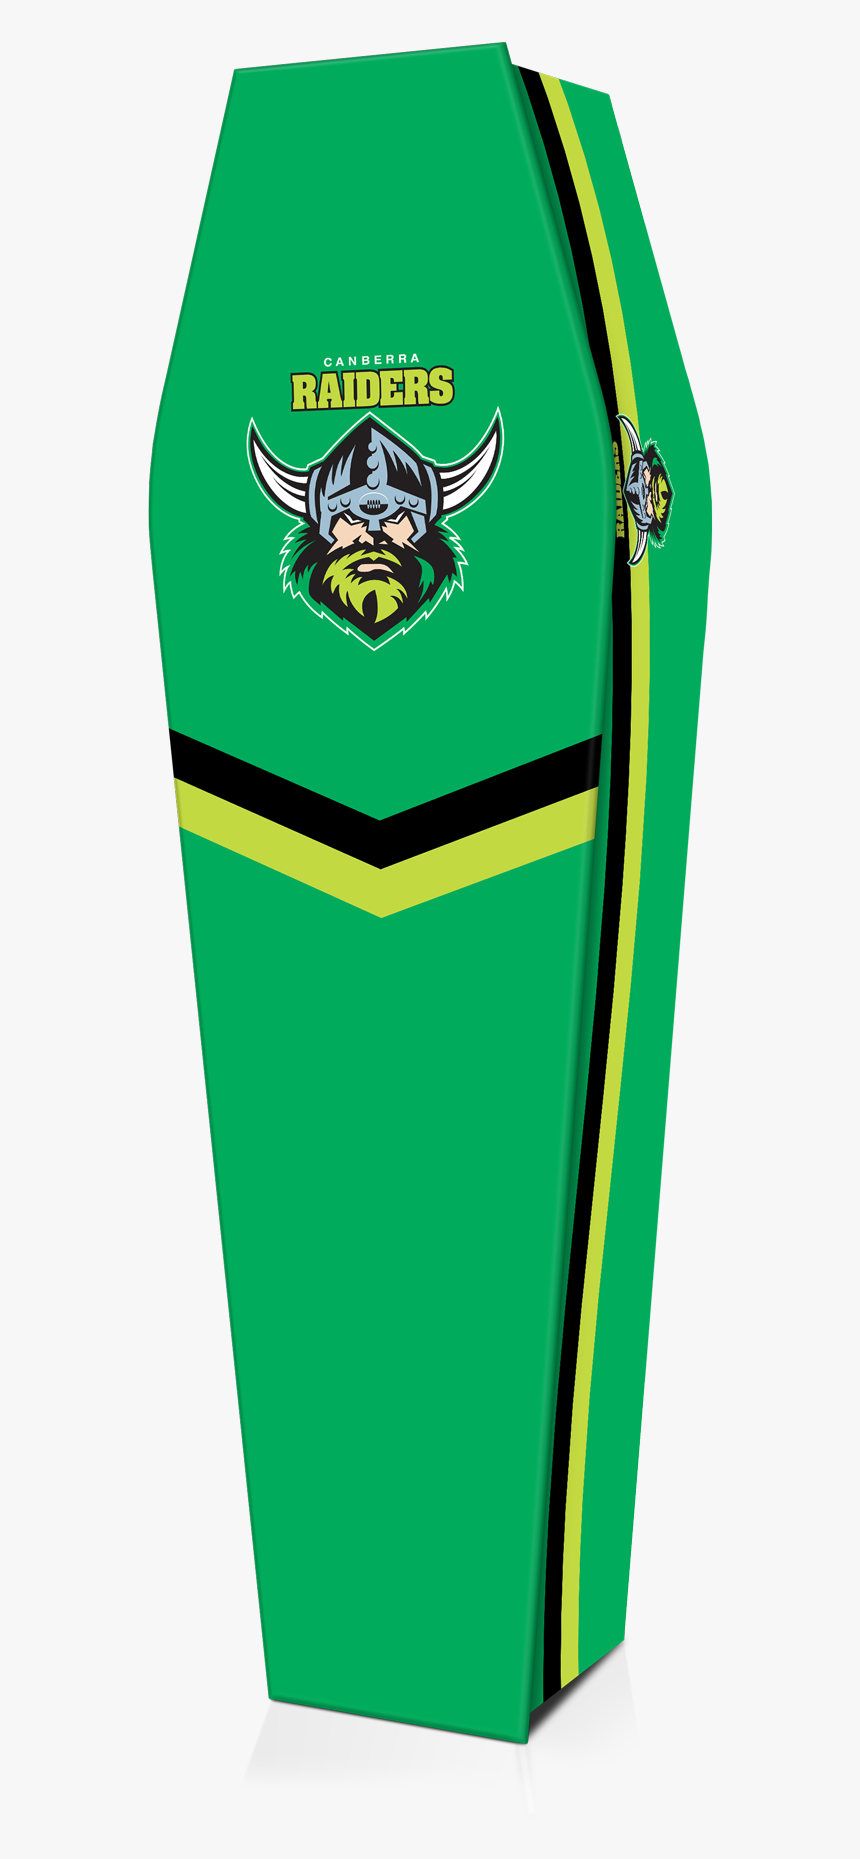 Canberra Raiders Background 2017 Hd Png Download Transparent Png Image Pngitem